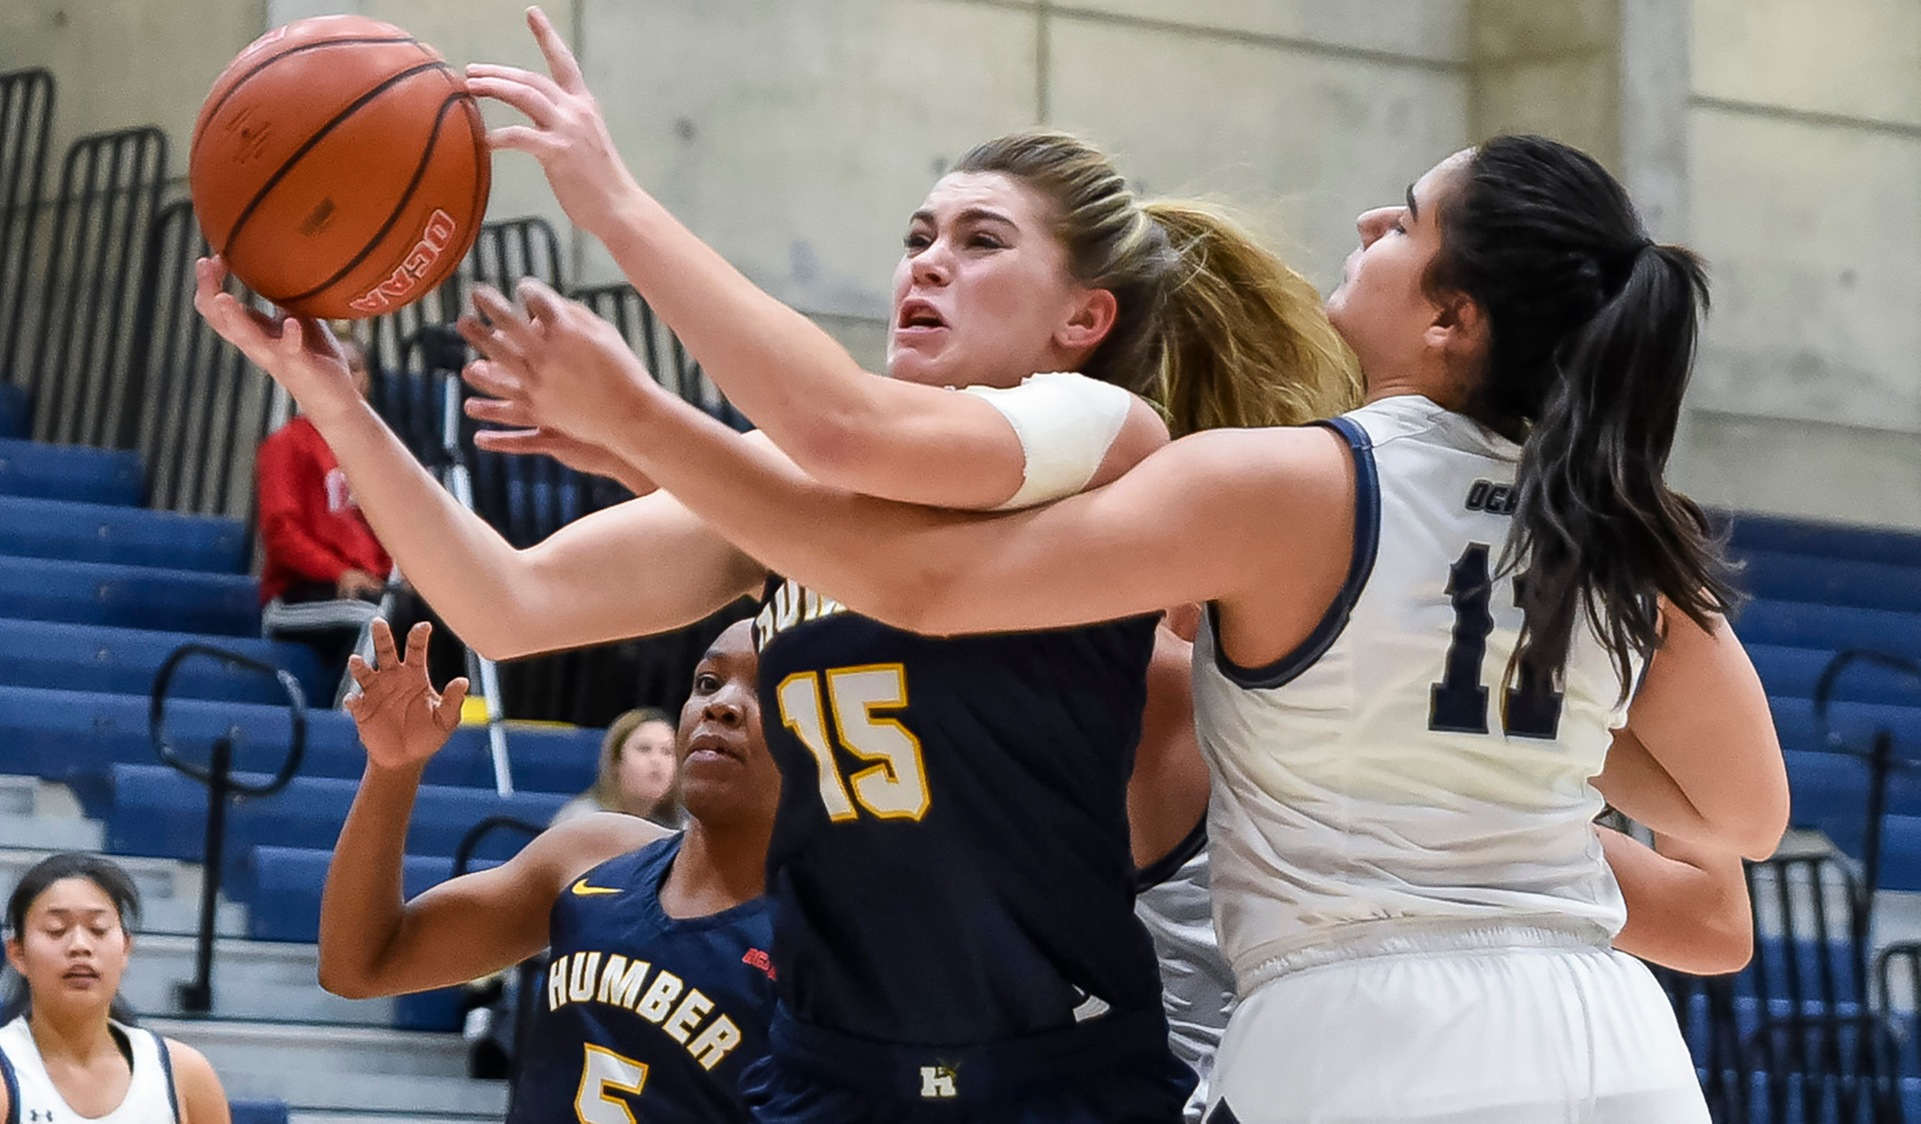 No. 11 WOMEN'S BASKETBALL WIN SIXTH STRAIGHT WITH ROAD WIN OVER UTM, 69-56